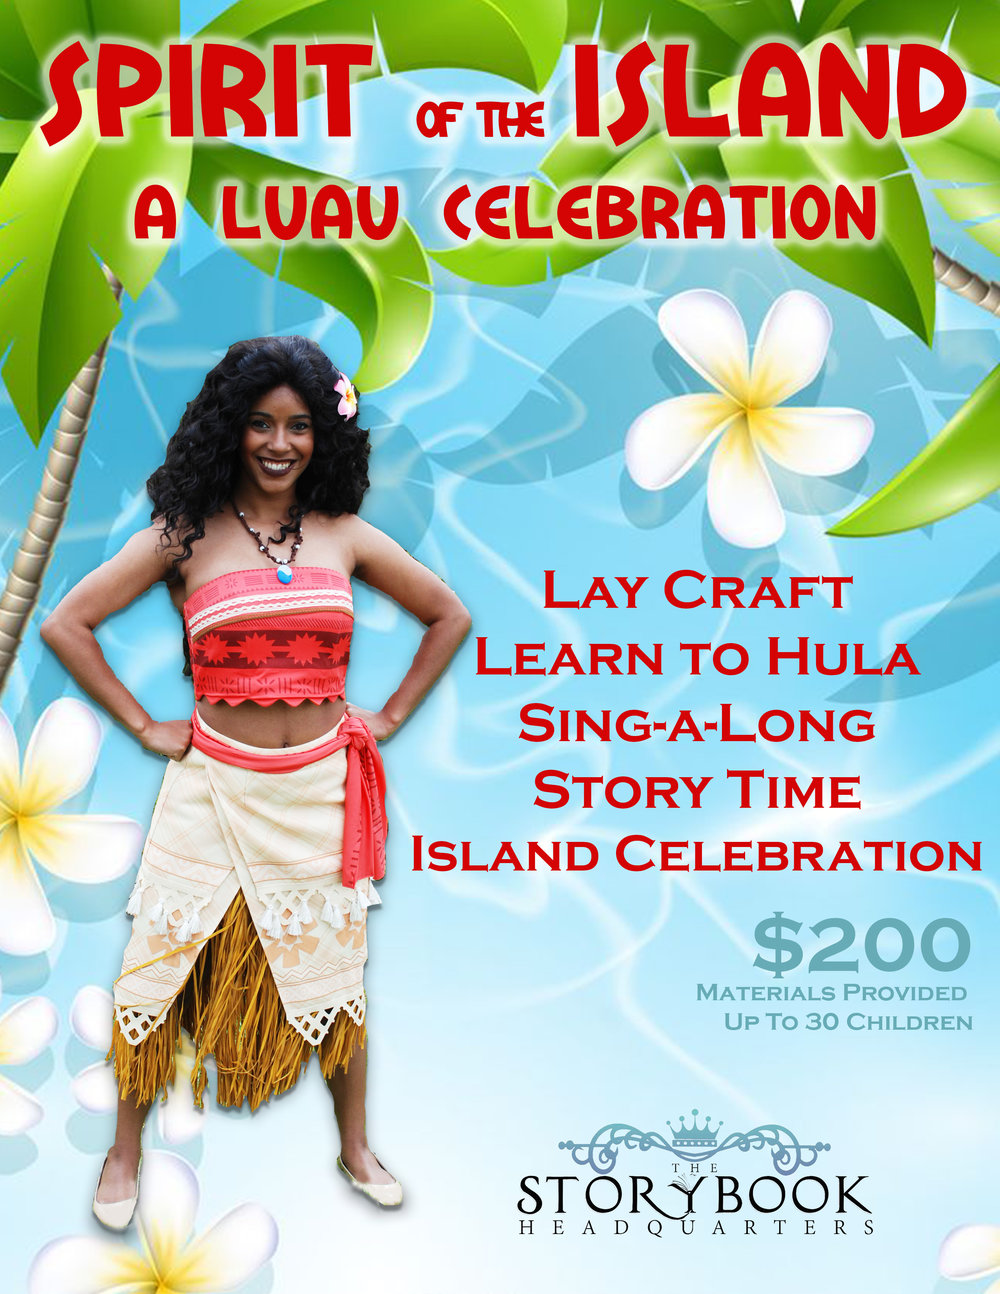 New for 2018! - Join our Pacific Island Princess as she brings the Spirit of the Island to you!  Children will make their own flower lays to wear for a special hula dance, sing-a-long, and storytime.  The workshop ends with an Island Celebration, where the children will participate in a fun Island ritual and learn how to embody the true Spirit of the Island!This workshop fills a one hour time slot.  If time permits, children will be invited to a meet and greet with our Pacific Island Princess with autographs and pictures.**Prices may vary if booking for a private party.